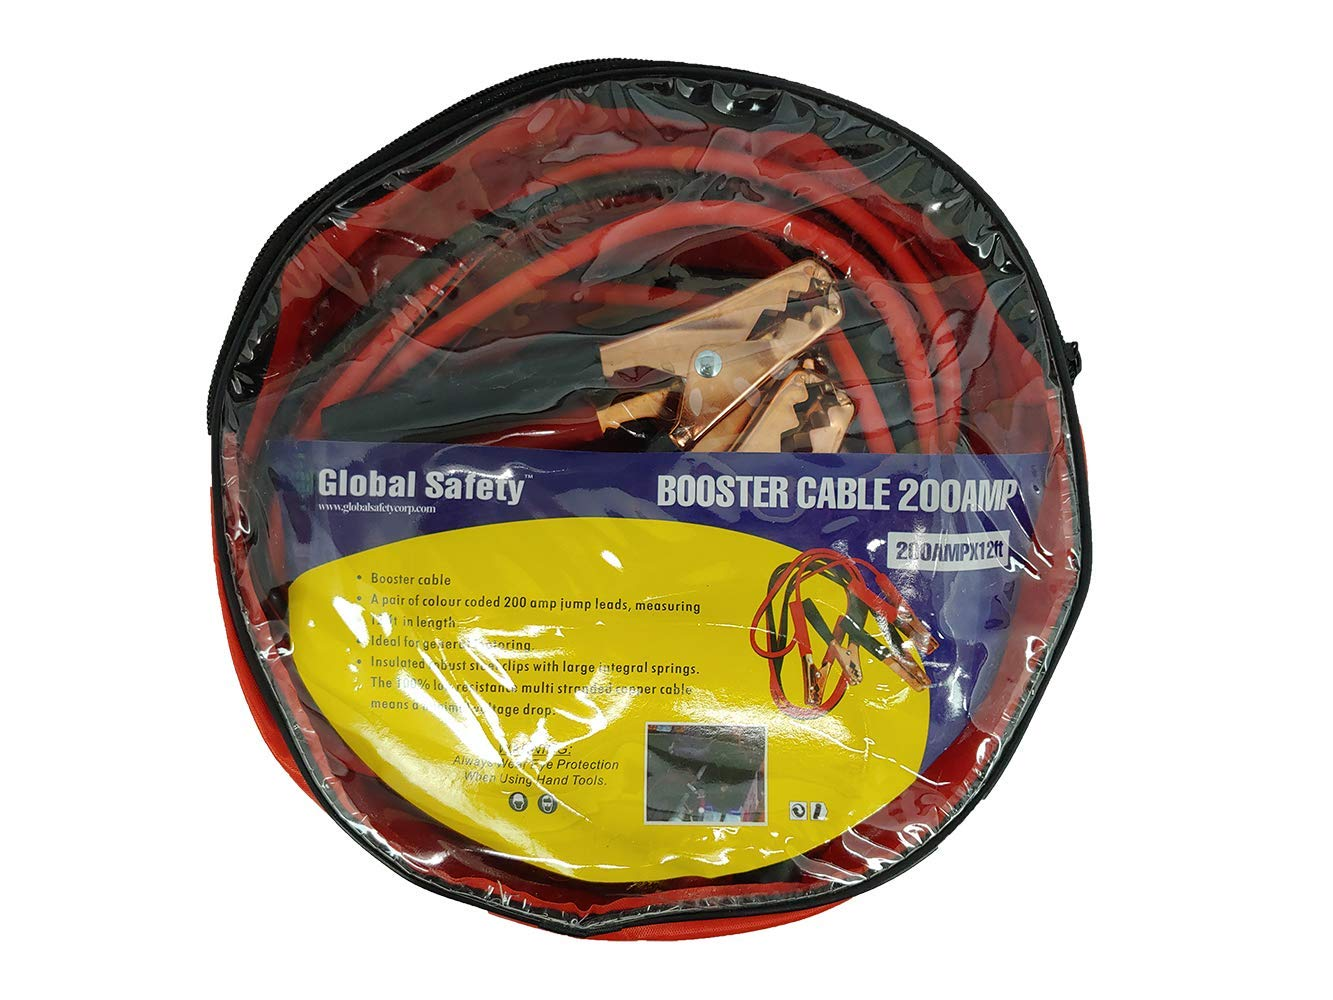 CPR Savers 200 AMP Color Coded 12 ft Car Jumper Cables for Small to Mid Sized Vehicles